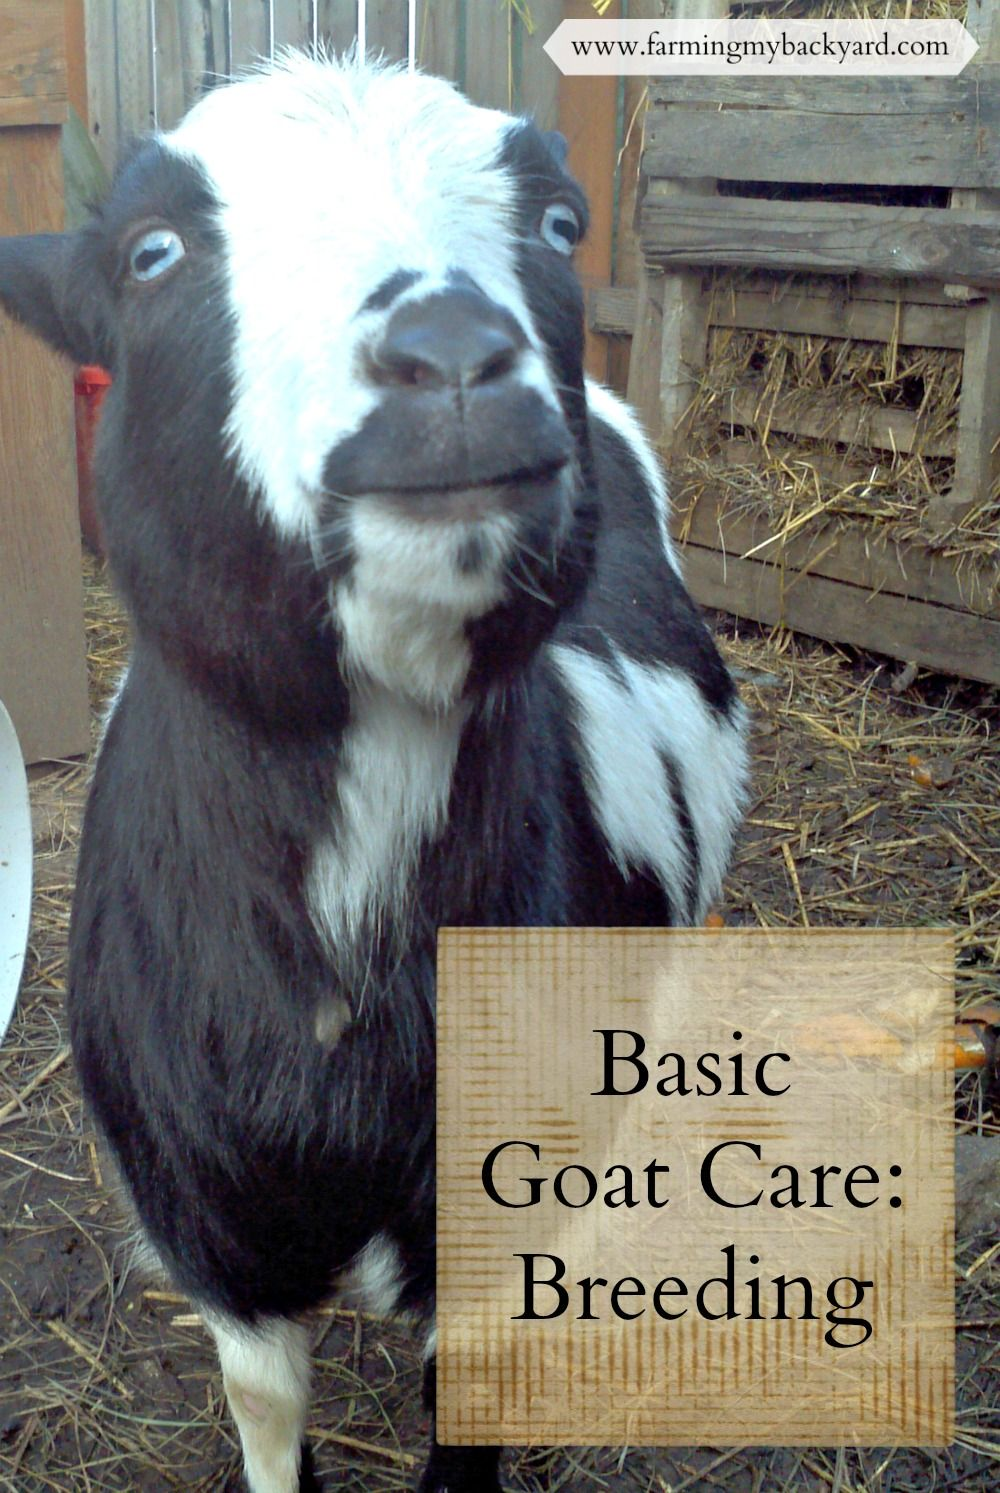 Basic Goat Care: How To Get Started Breeding Goats | Goats